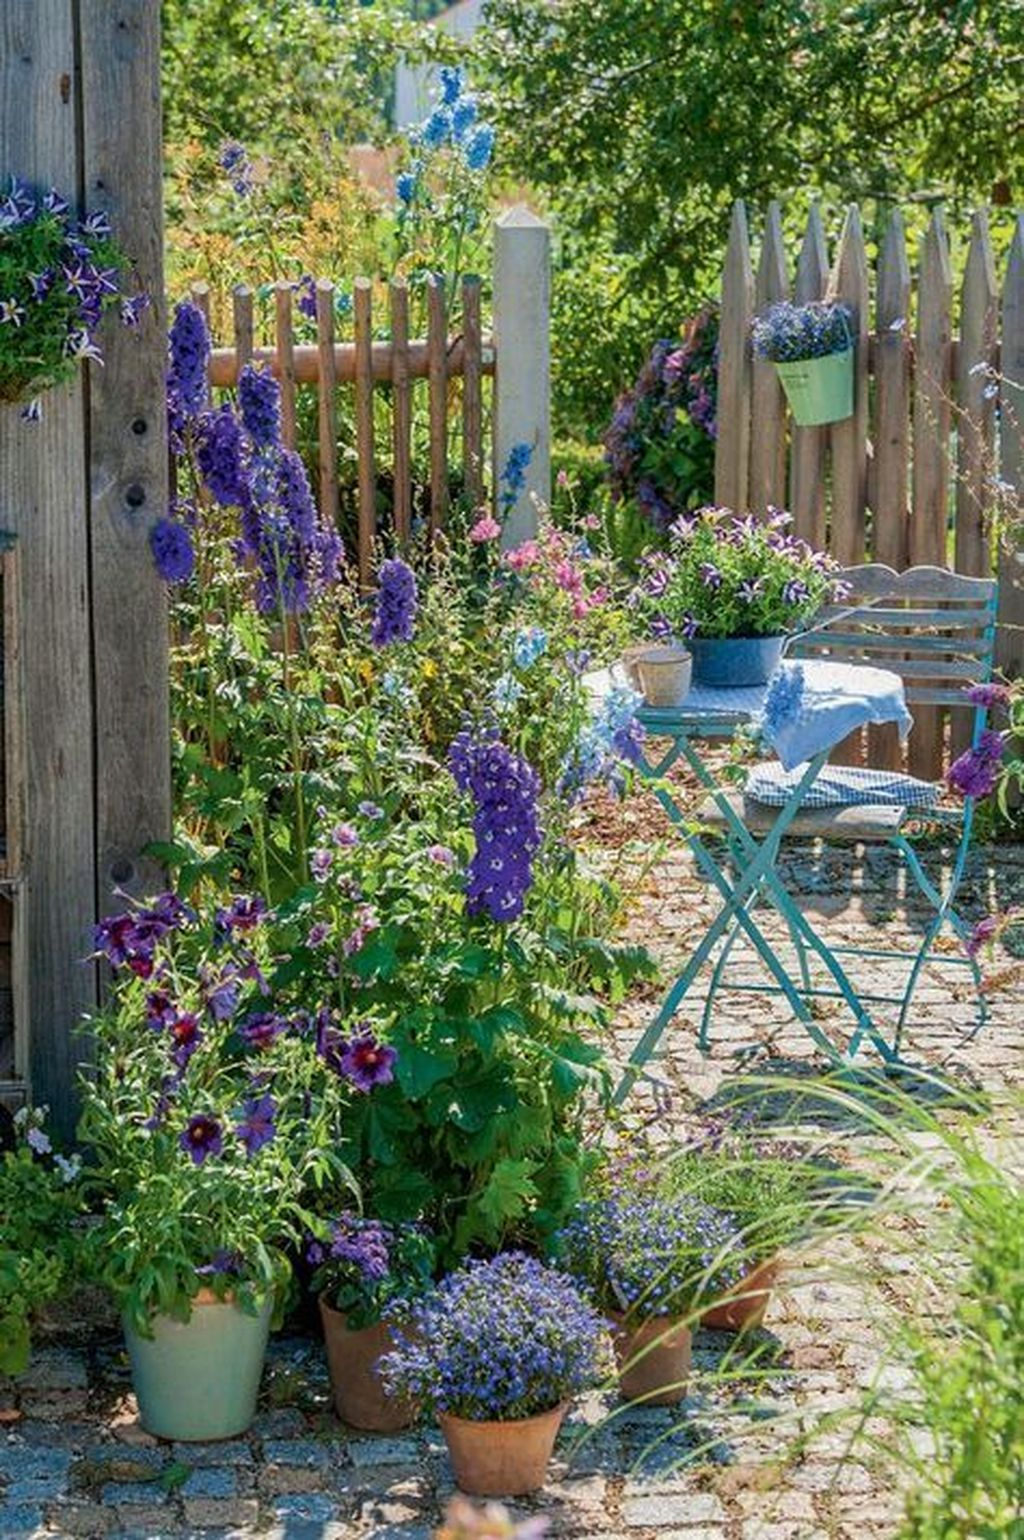 Stunning Backyard Flower Garden Ideas You Should Copy Now 13